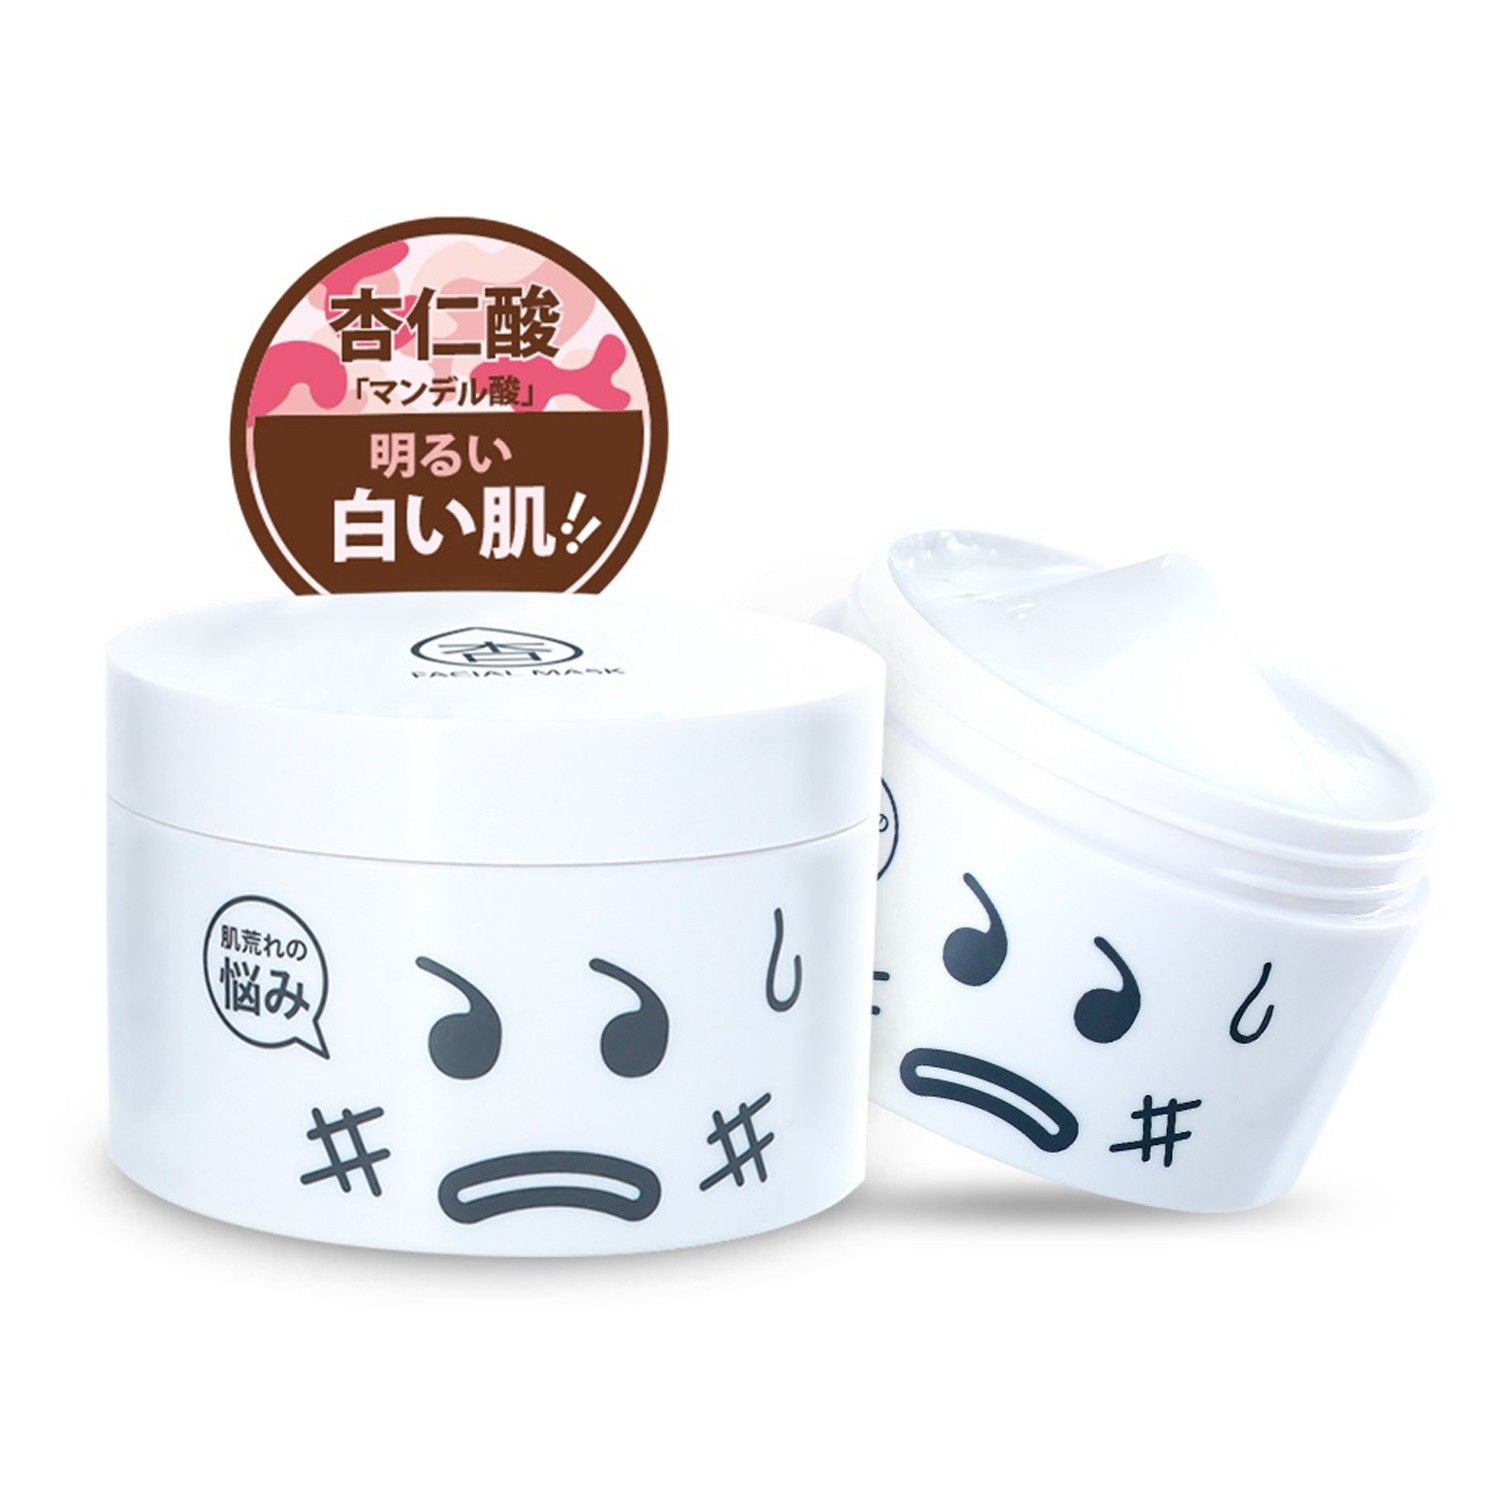 HANAKA - Intensive Renewal Facial Mask 250g